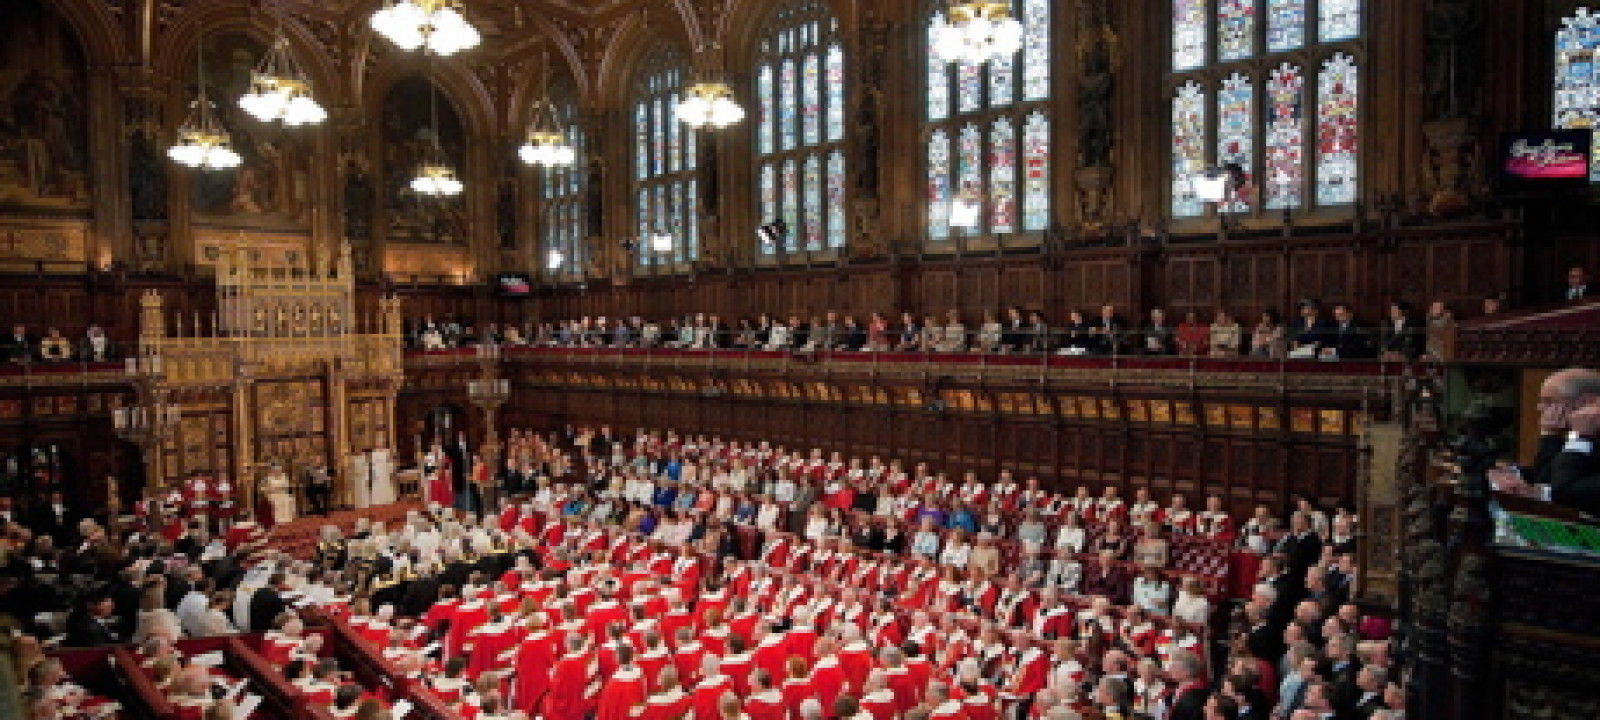 HouseofLords